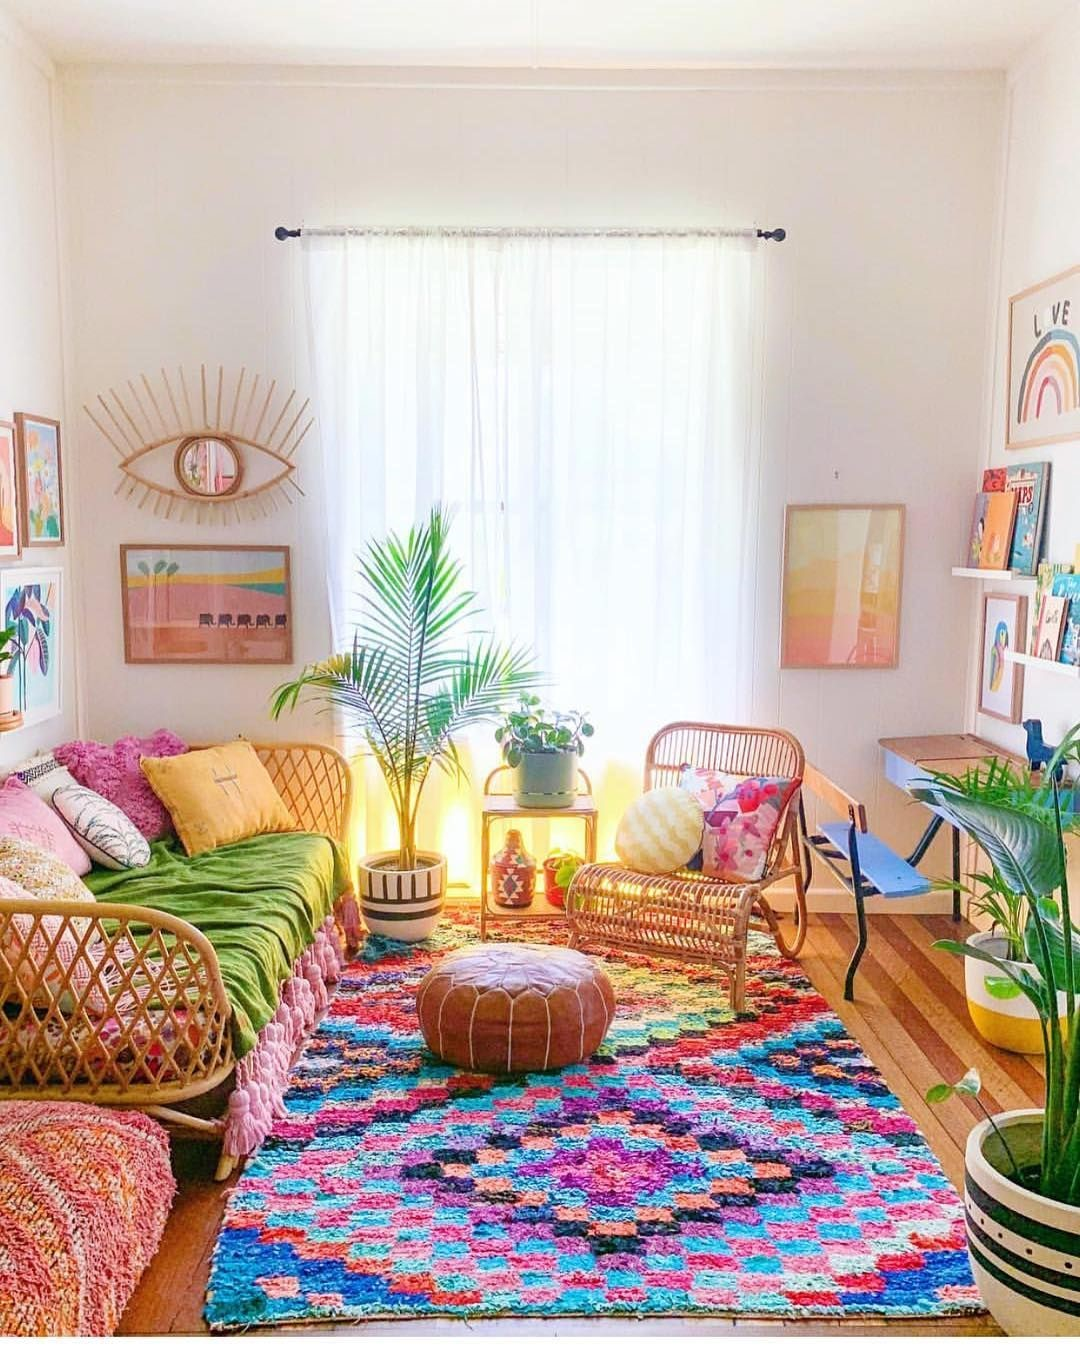 colors matter in boho style